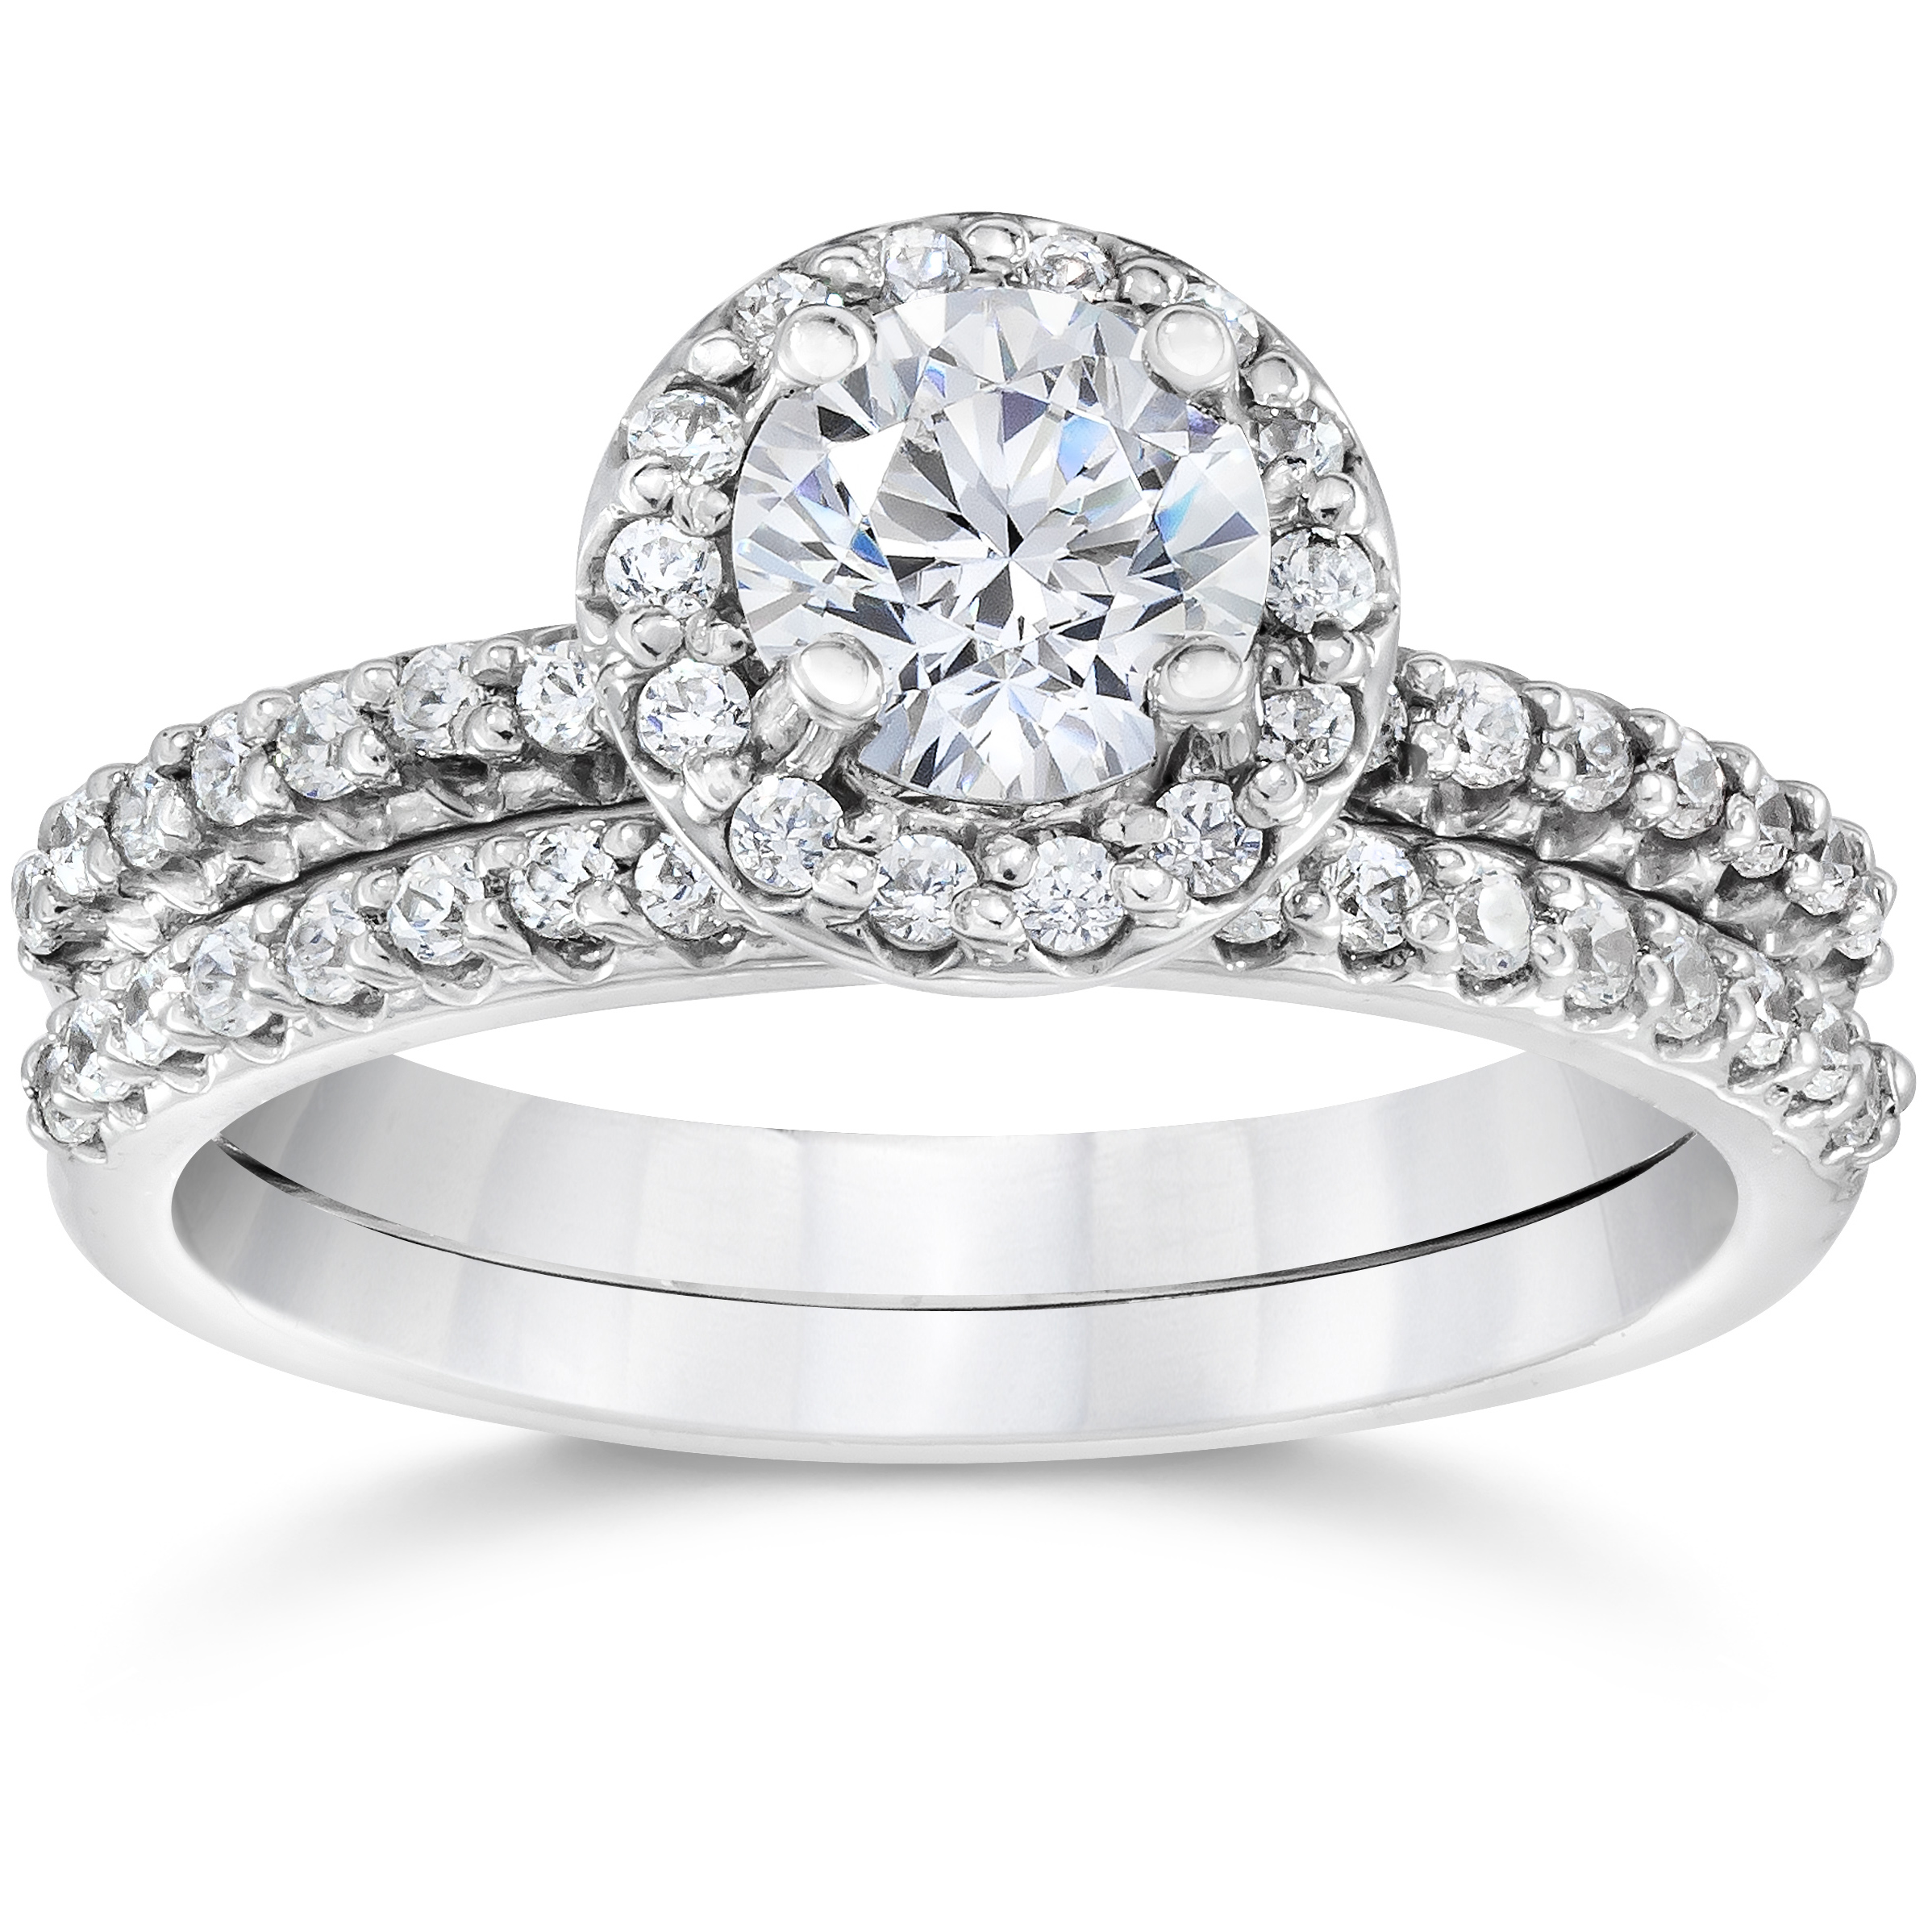 Pompeii3 1 1/10 ct Diamond Pave Halo Solitaire Engagement...